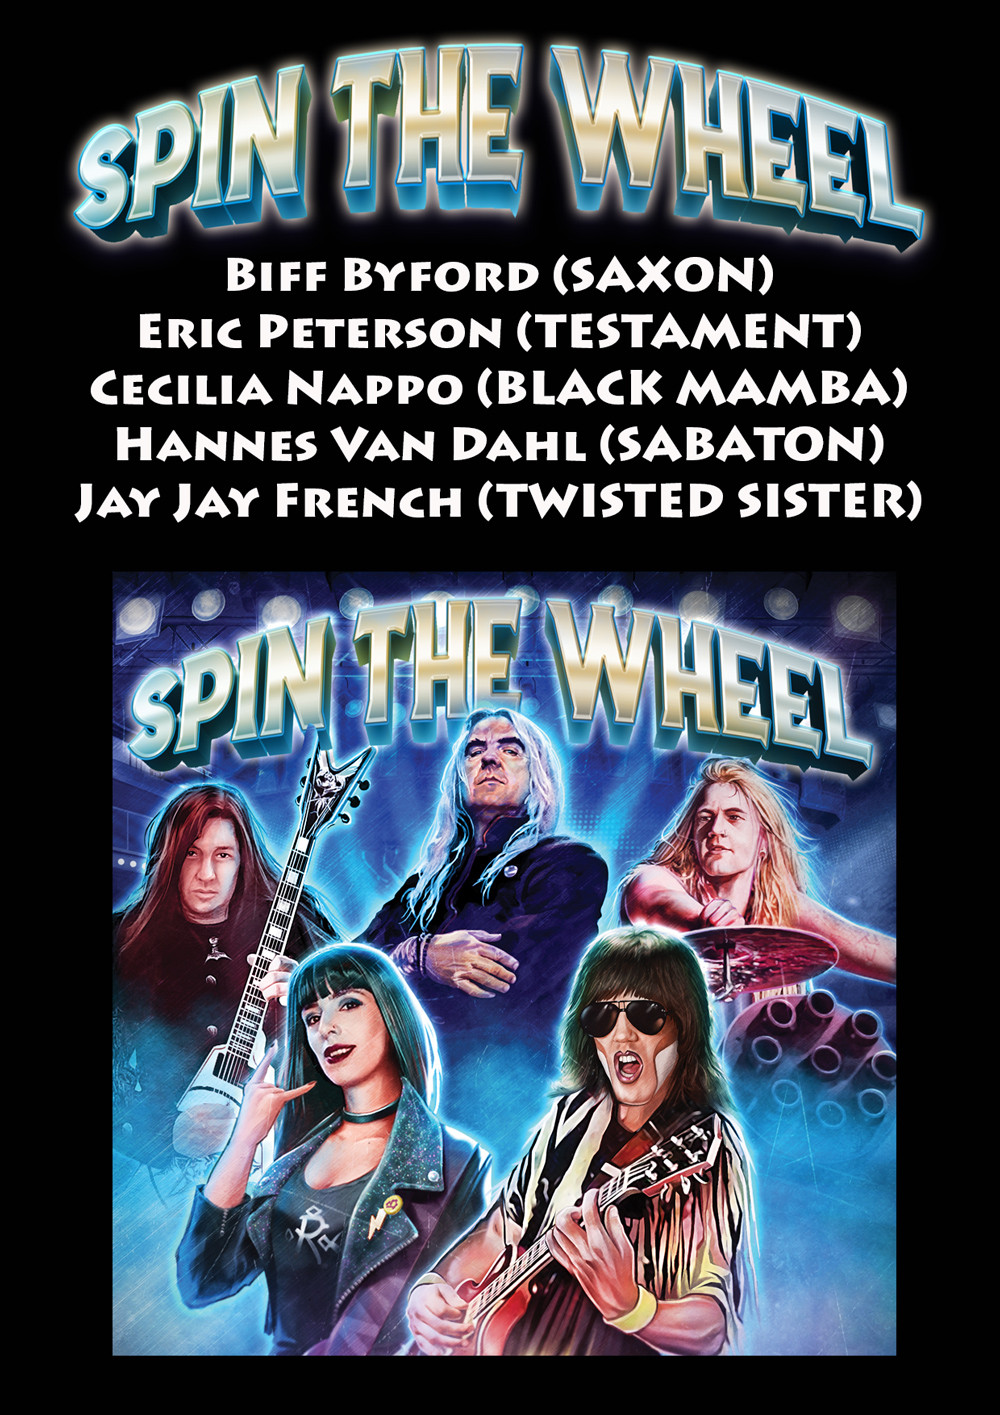 'Spin The Wheel' ft. Biff Byford (SAXON), Eric Peterson (TESTAMENT), Cecilia Nappo (BLACK MAMBA), Hannes Van Dahl (SABATON) & Jay Jay French (TWISTED SISTER)